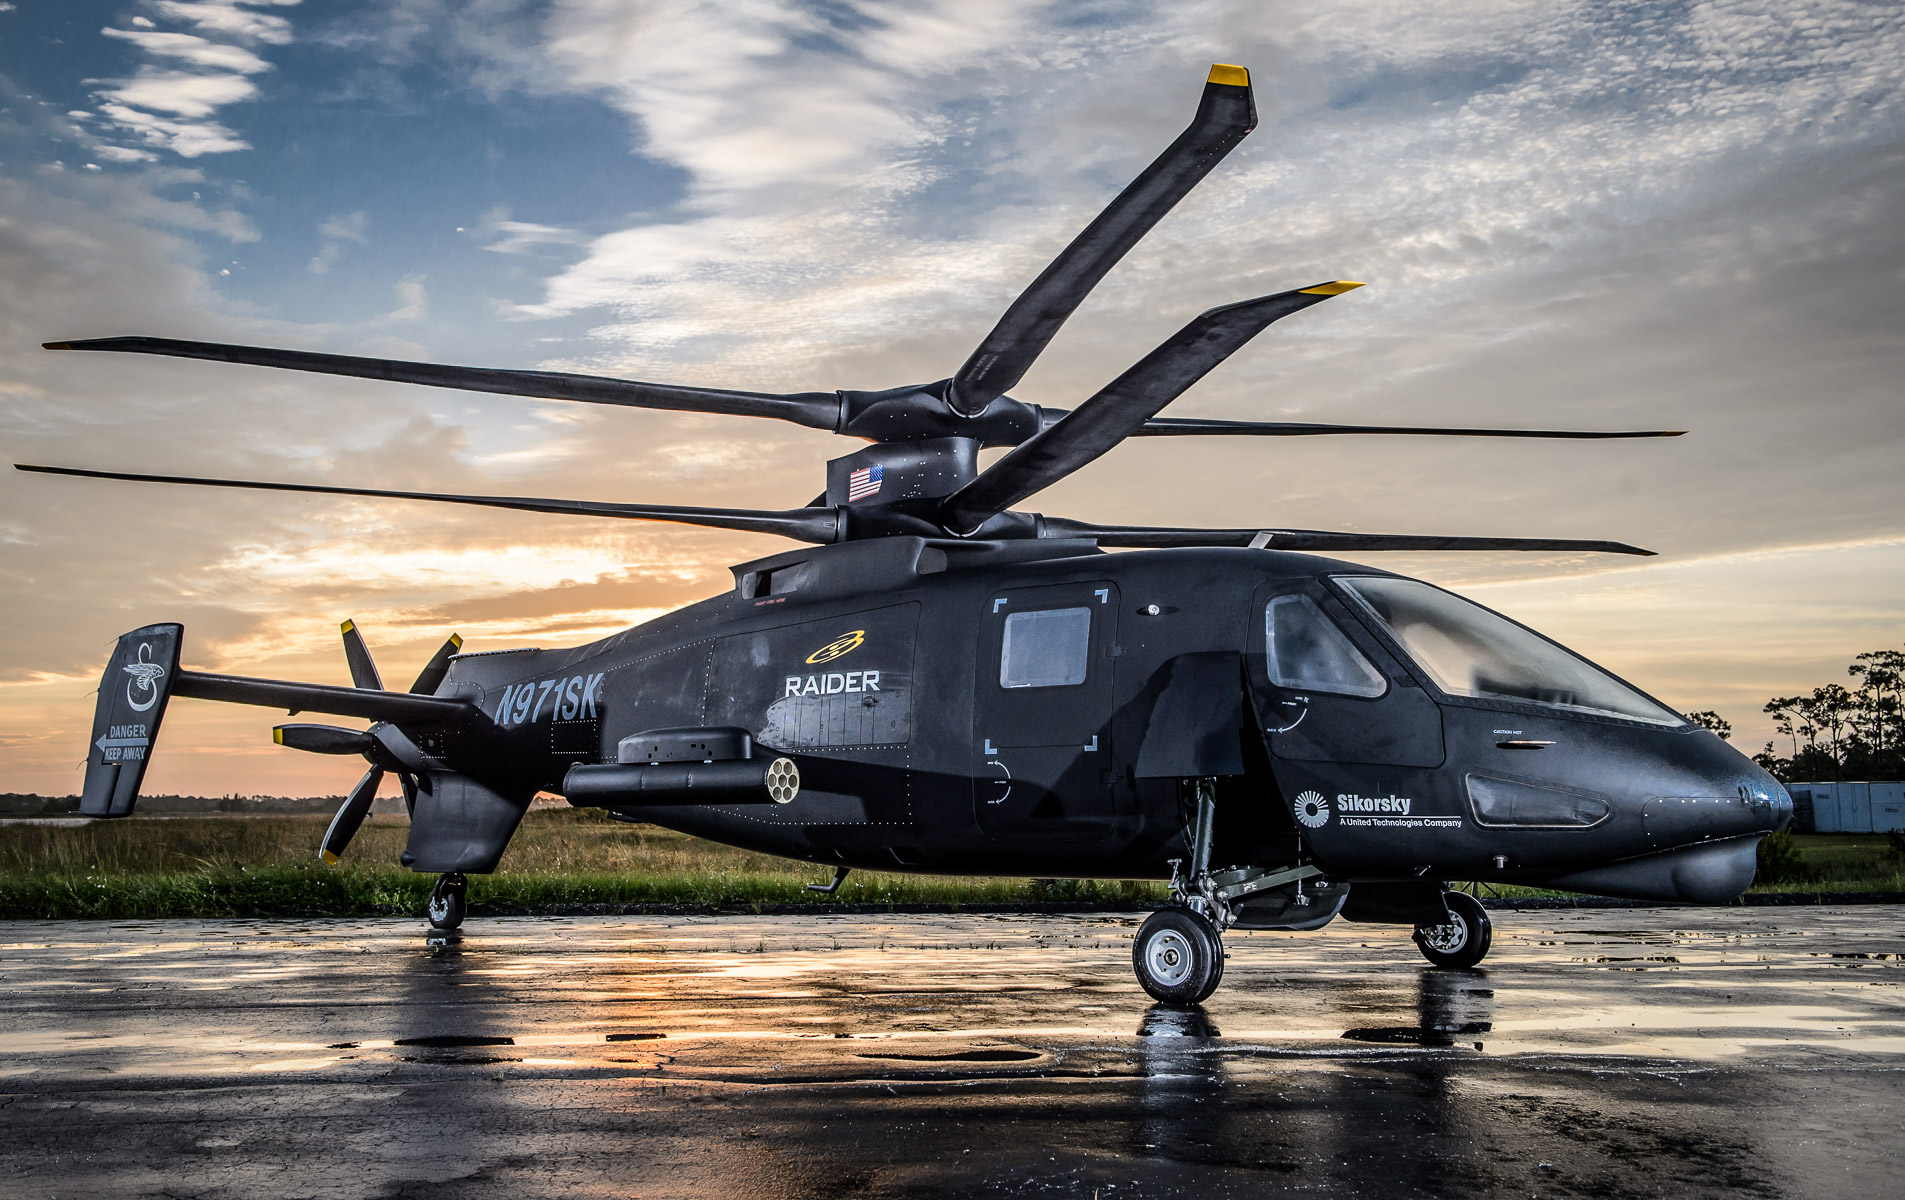 Image of a Military Helicopter Photographed at Sunrise